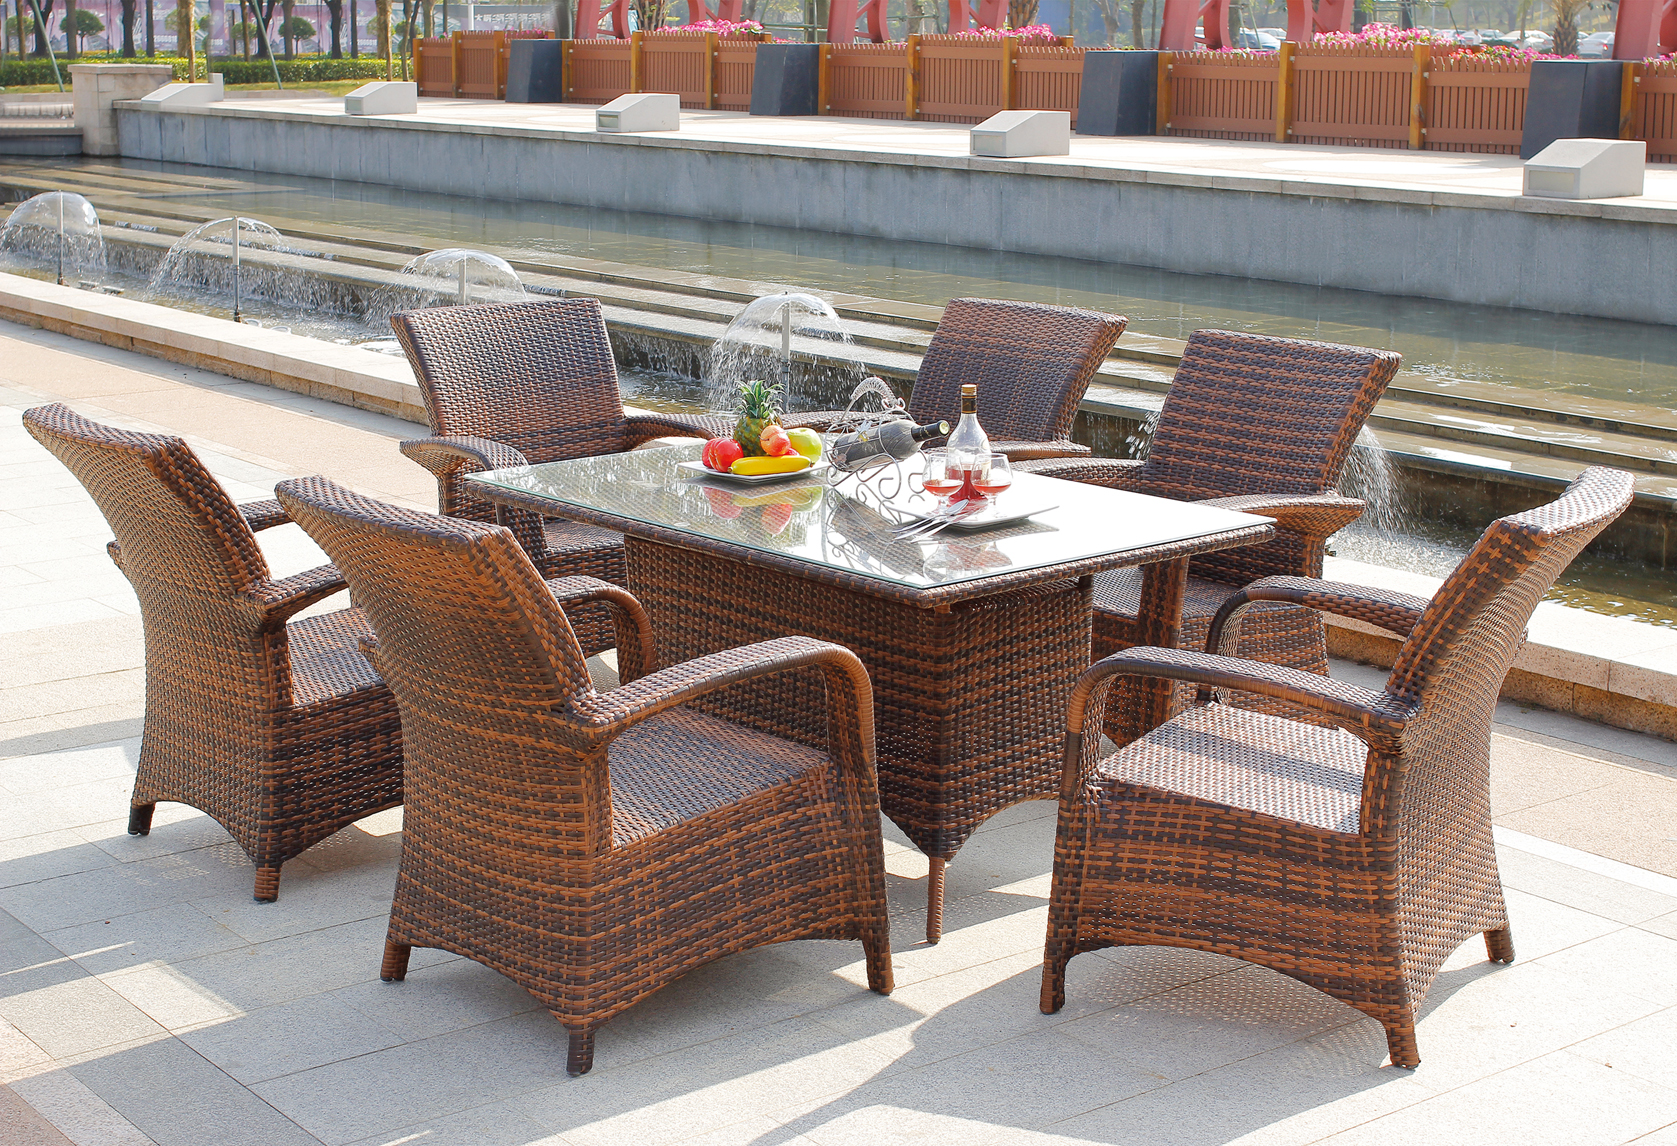 Outdoor Furniture Rattan Furniture Rattan Table And Chair Garden Set Buy Rattan Furniture Rattan Table Chair Rattan Dinning Set Product On Alibaba Com